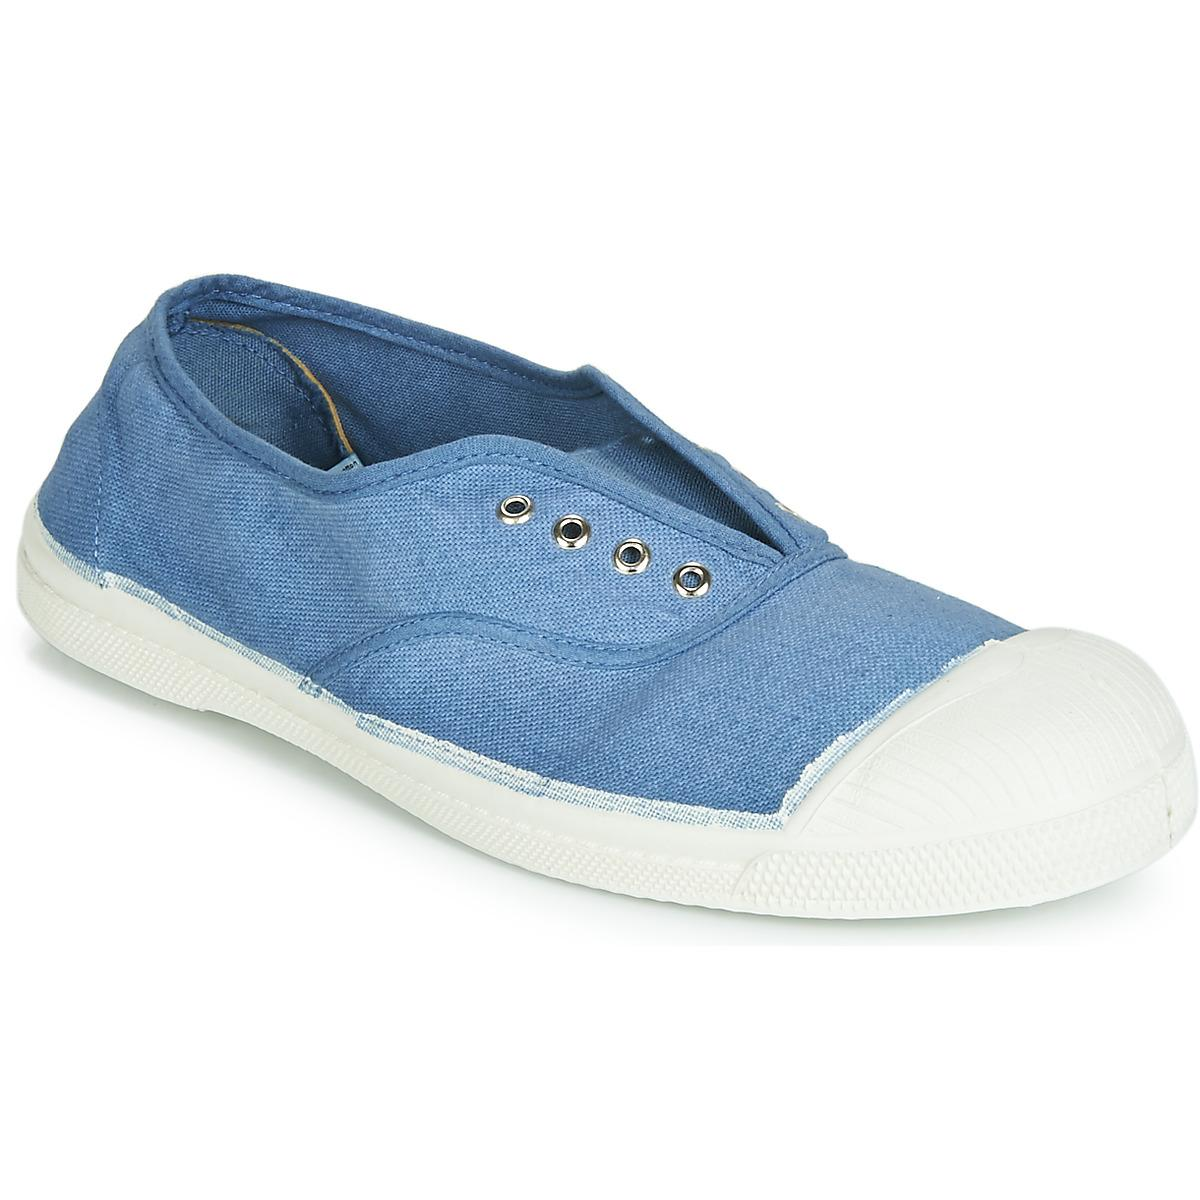 419792953e2031 Bensimon Tennis Elly Shoes (trainers) in Blue - Lyst